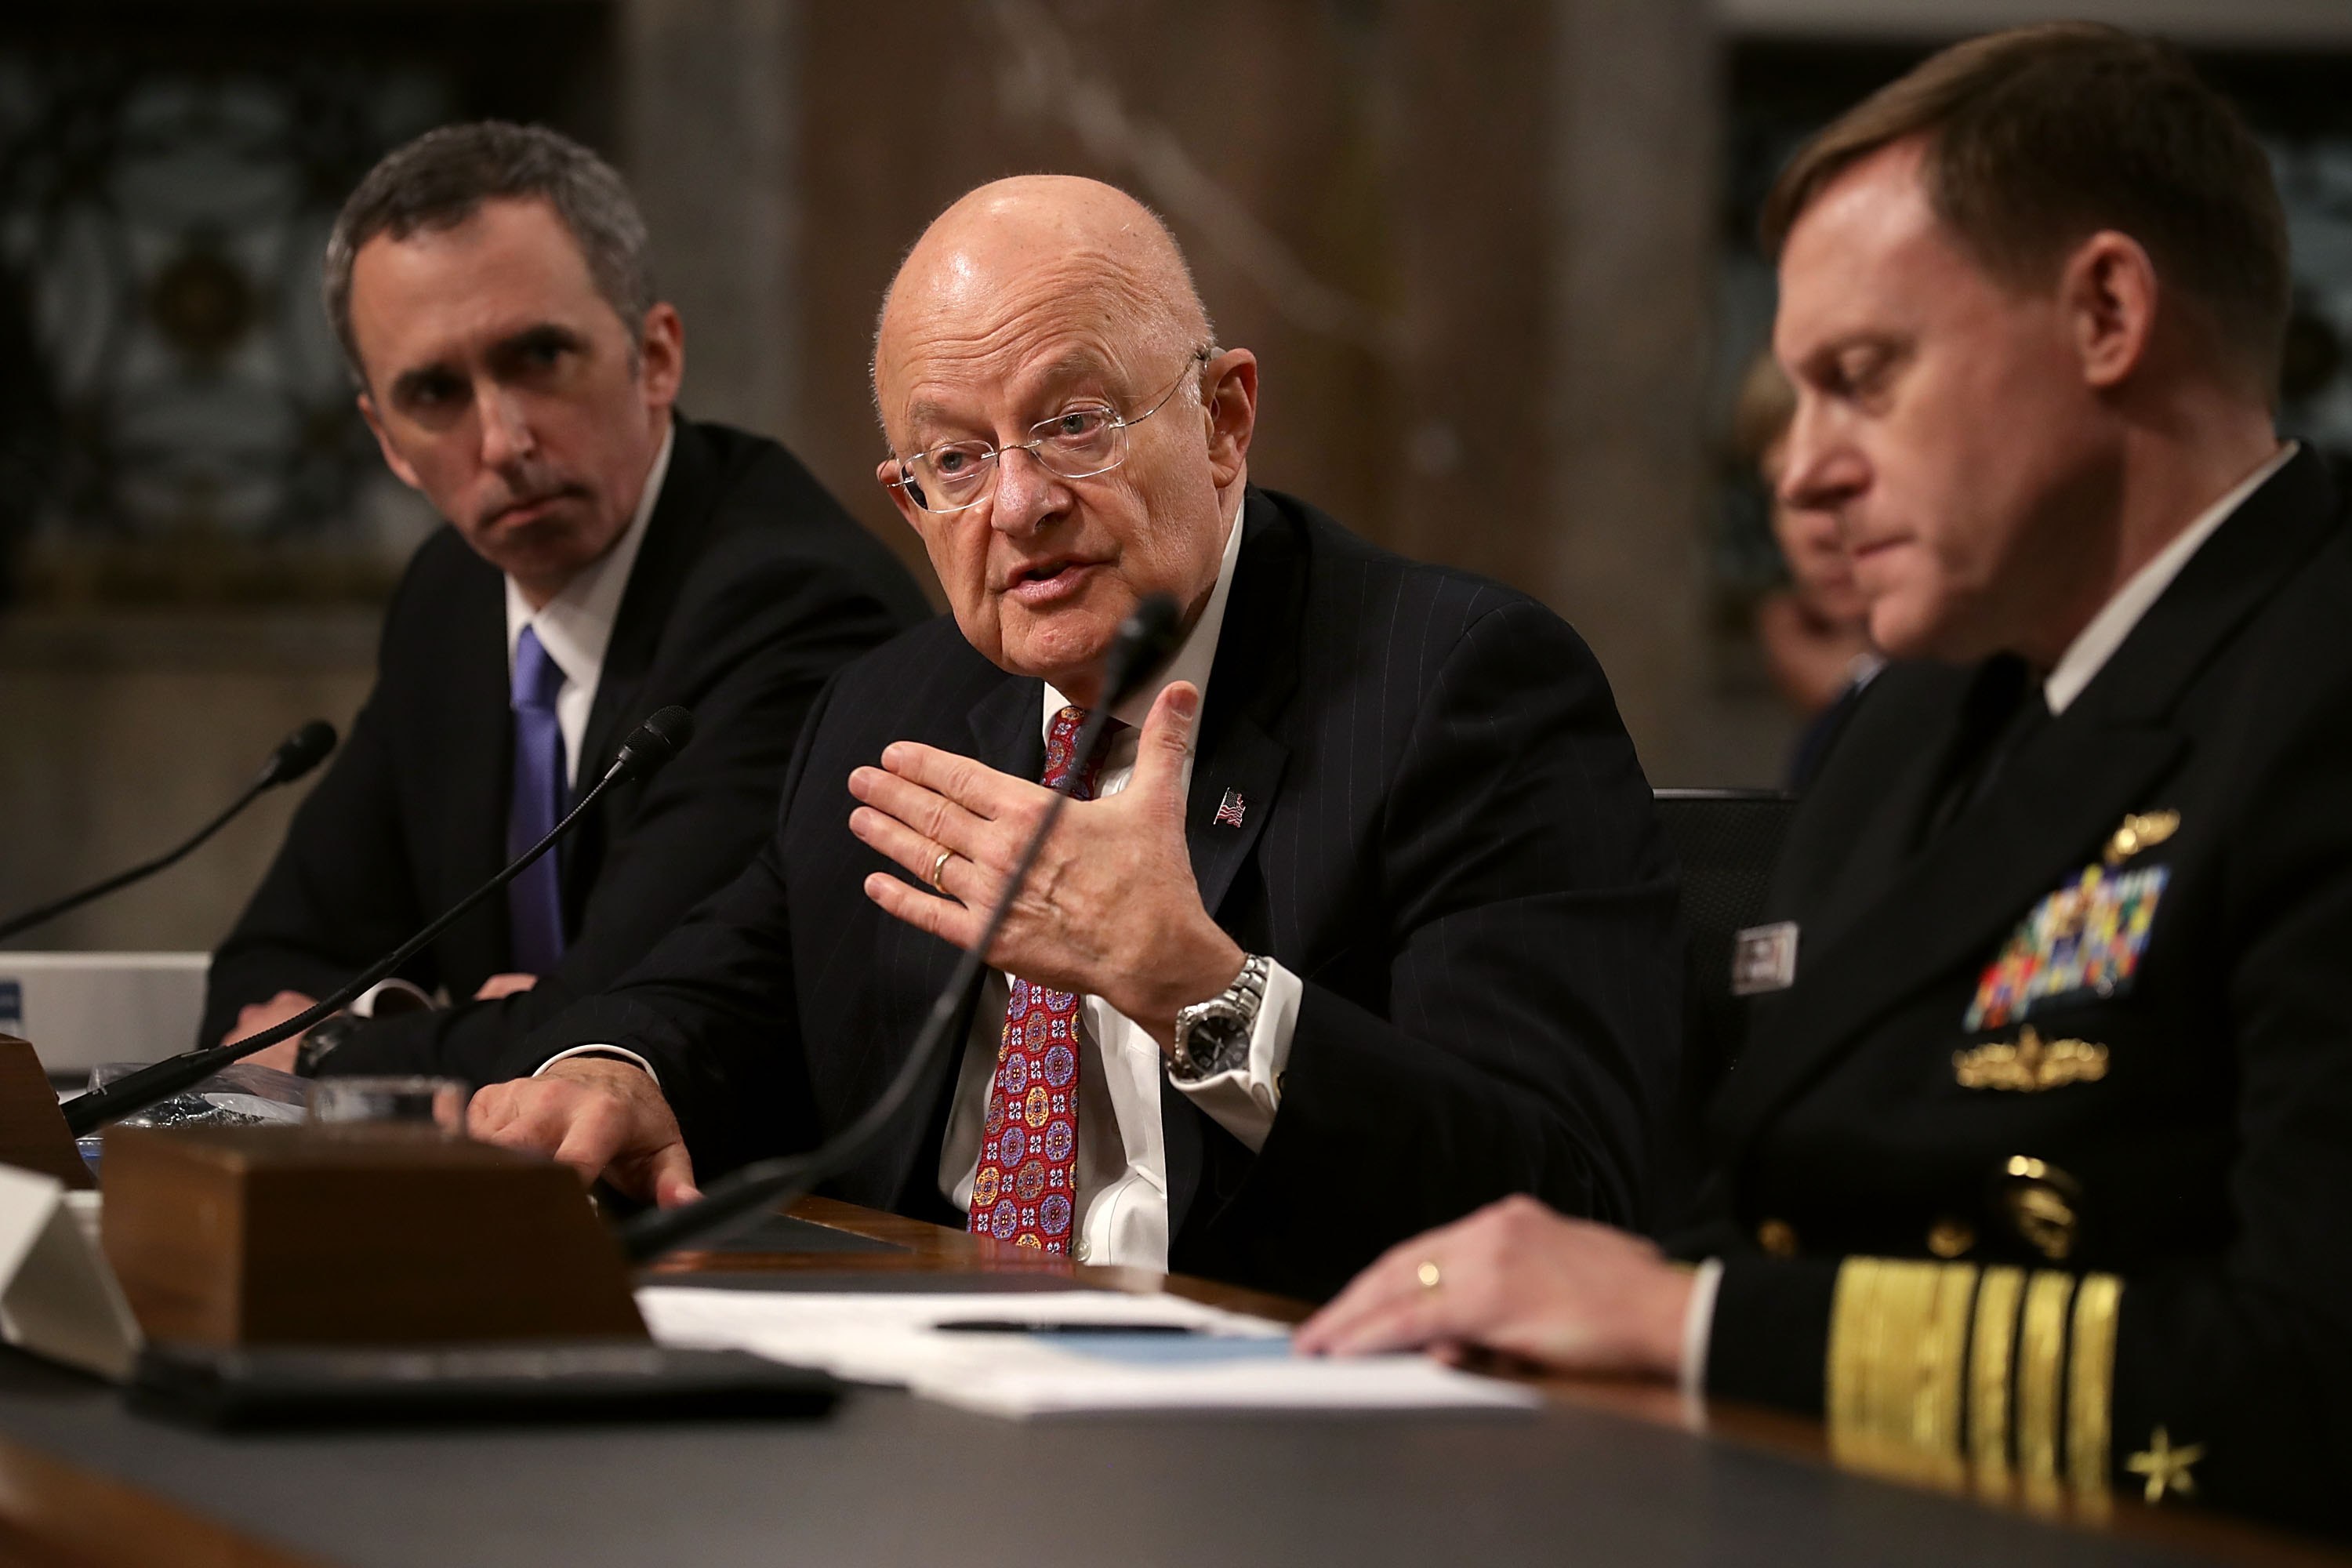 Lack of resilience led to lack of cyber strategy, says former DNI